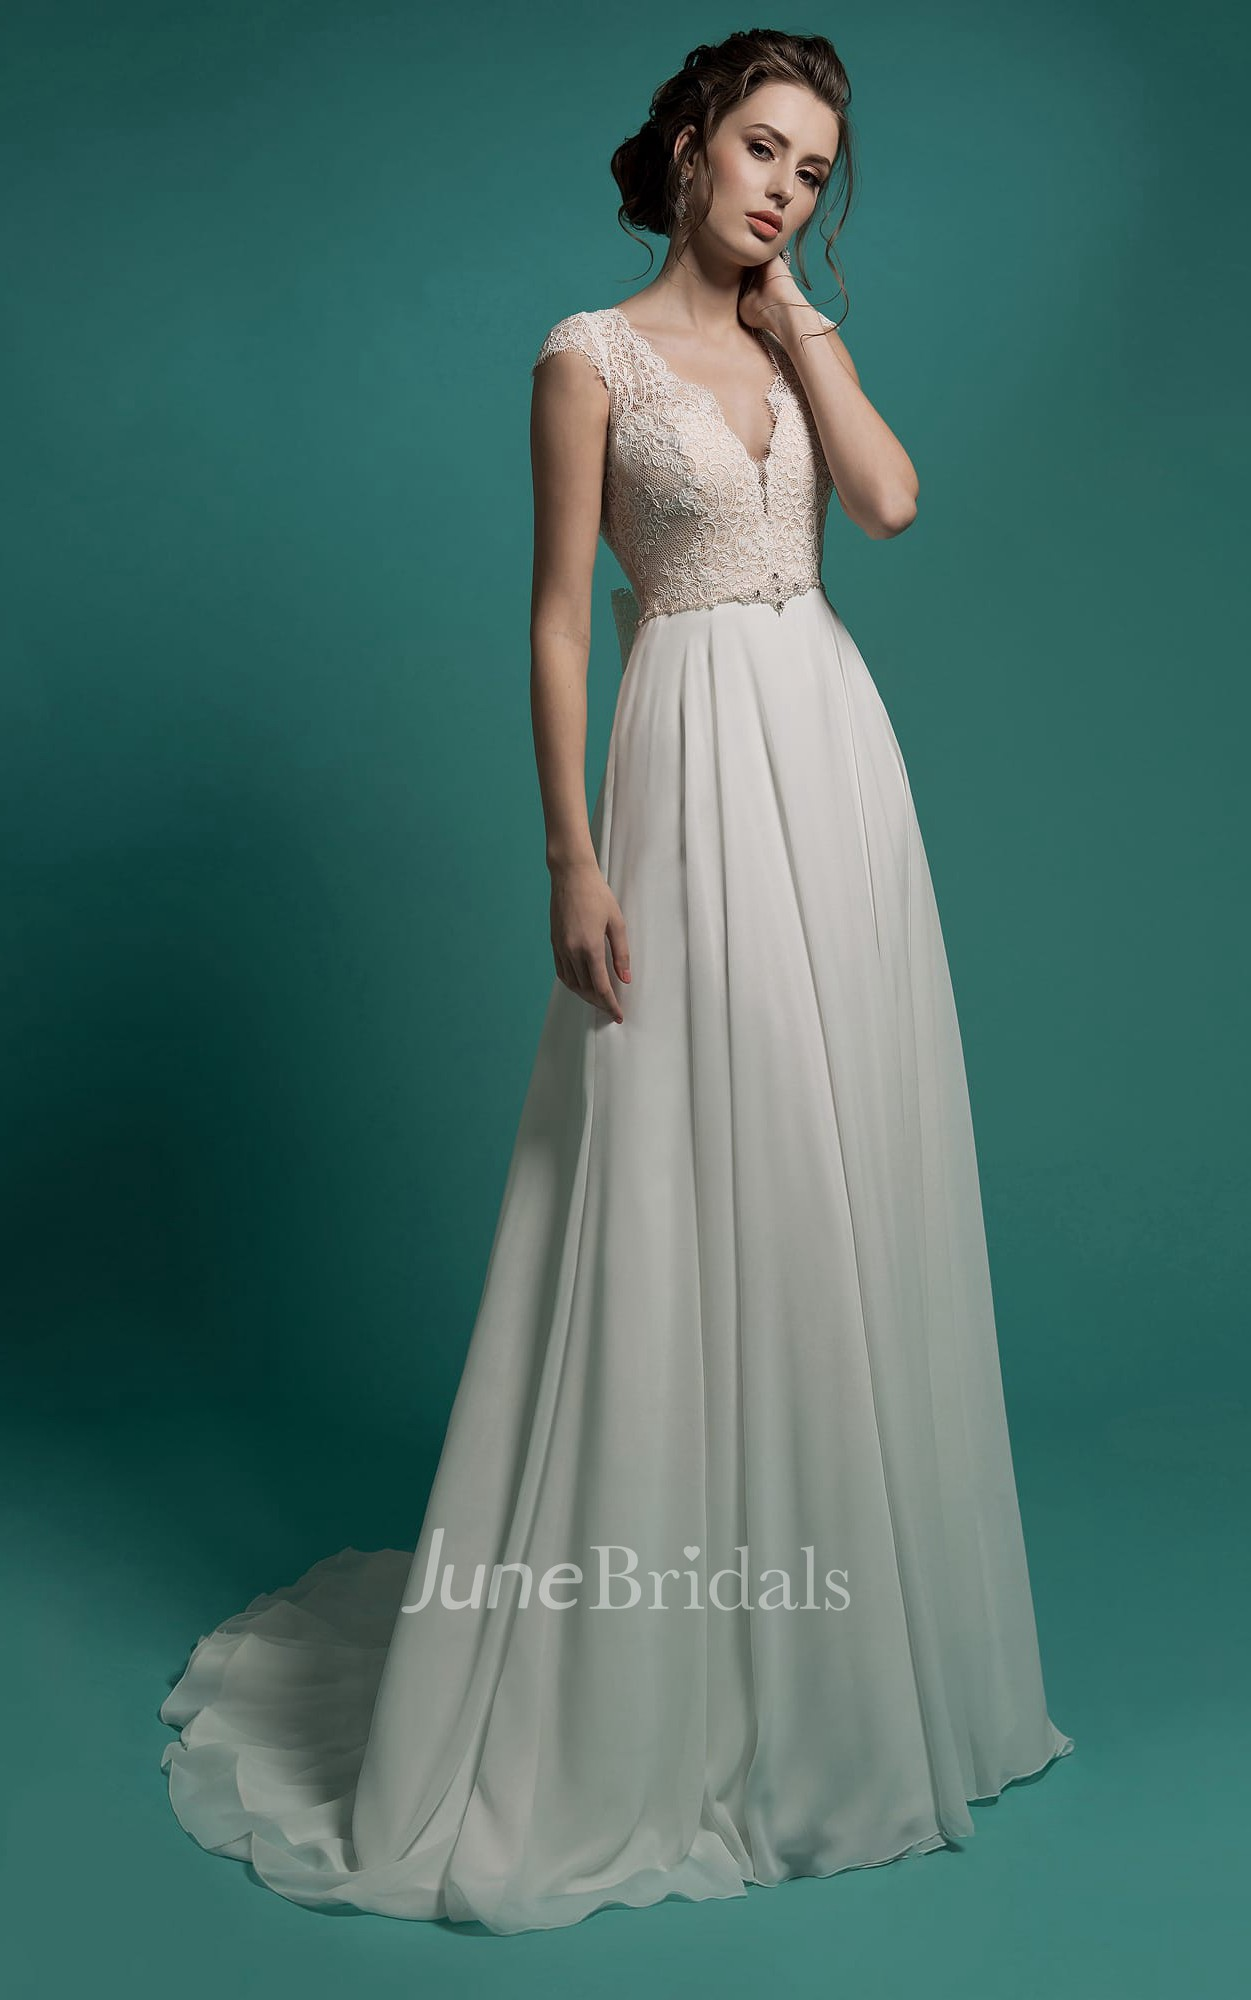 afb37b22687e A-Line Floor-Length V-Neck Cap-Sleeve Zipper Chiffon Dress With Lace  Appliques And Beading - June Bridals